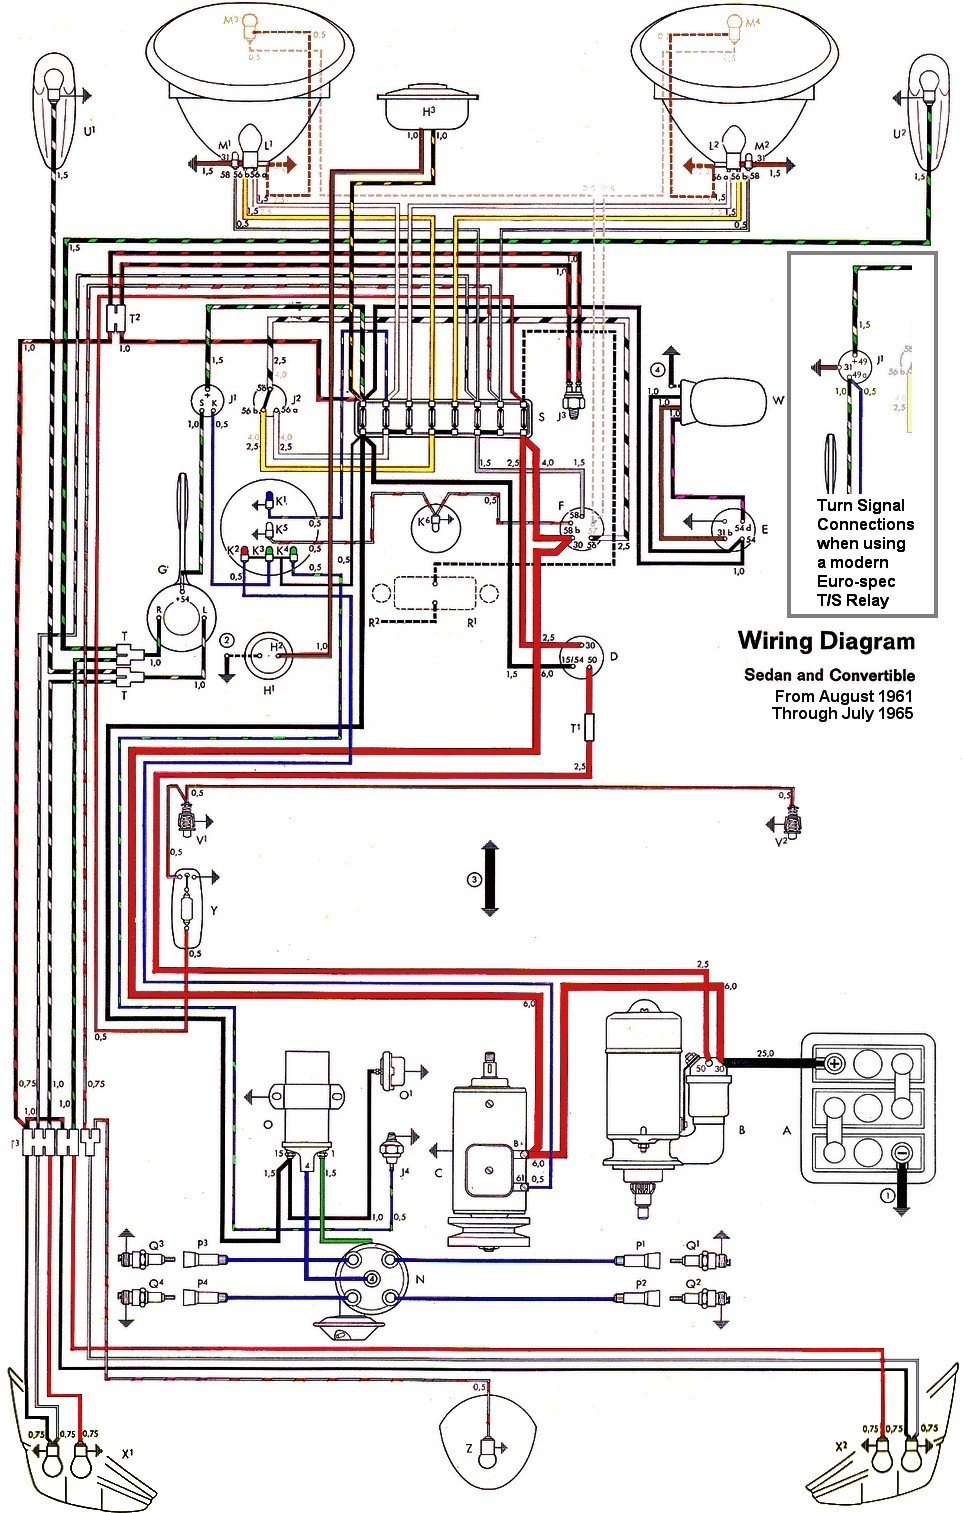 bug_62 65withinset thesamba com type 1 wiring diagrams 1970 vw bug wiring diagram at crackthecode.co